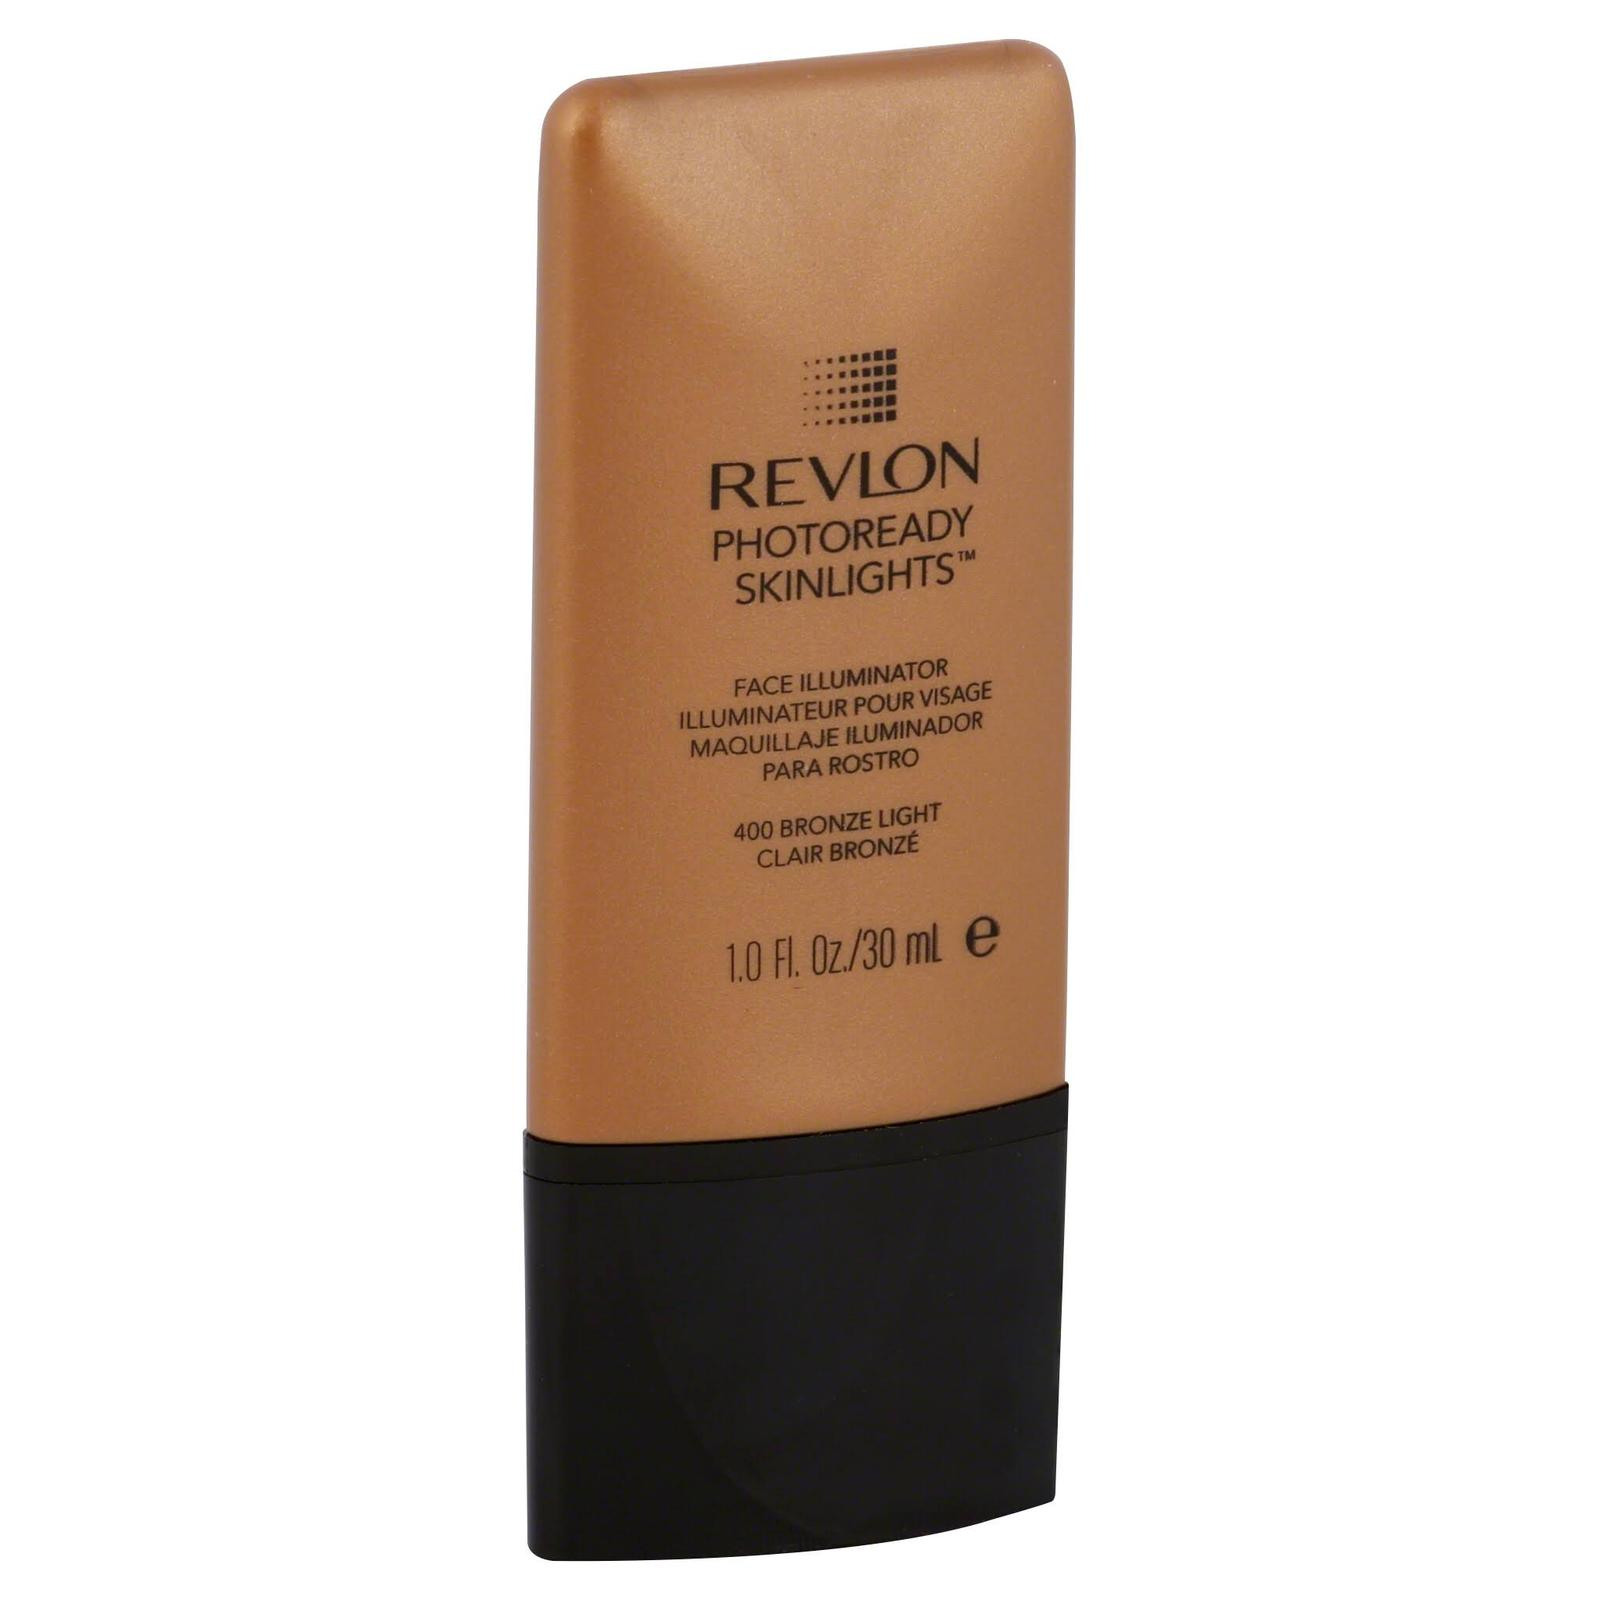 Primary image for Revlon Photoready Skinlights Face Illuminator, Bronze Light # 400, 1.0 fl. oz.